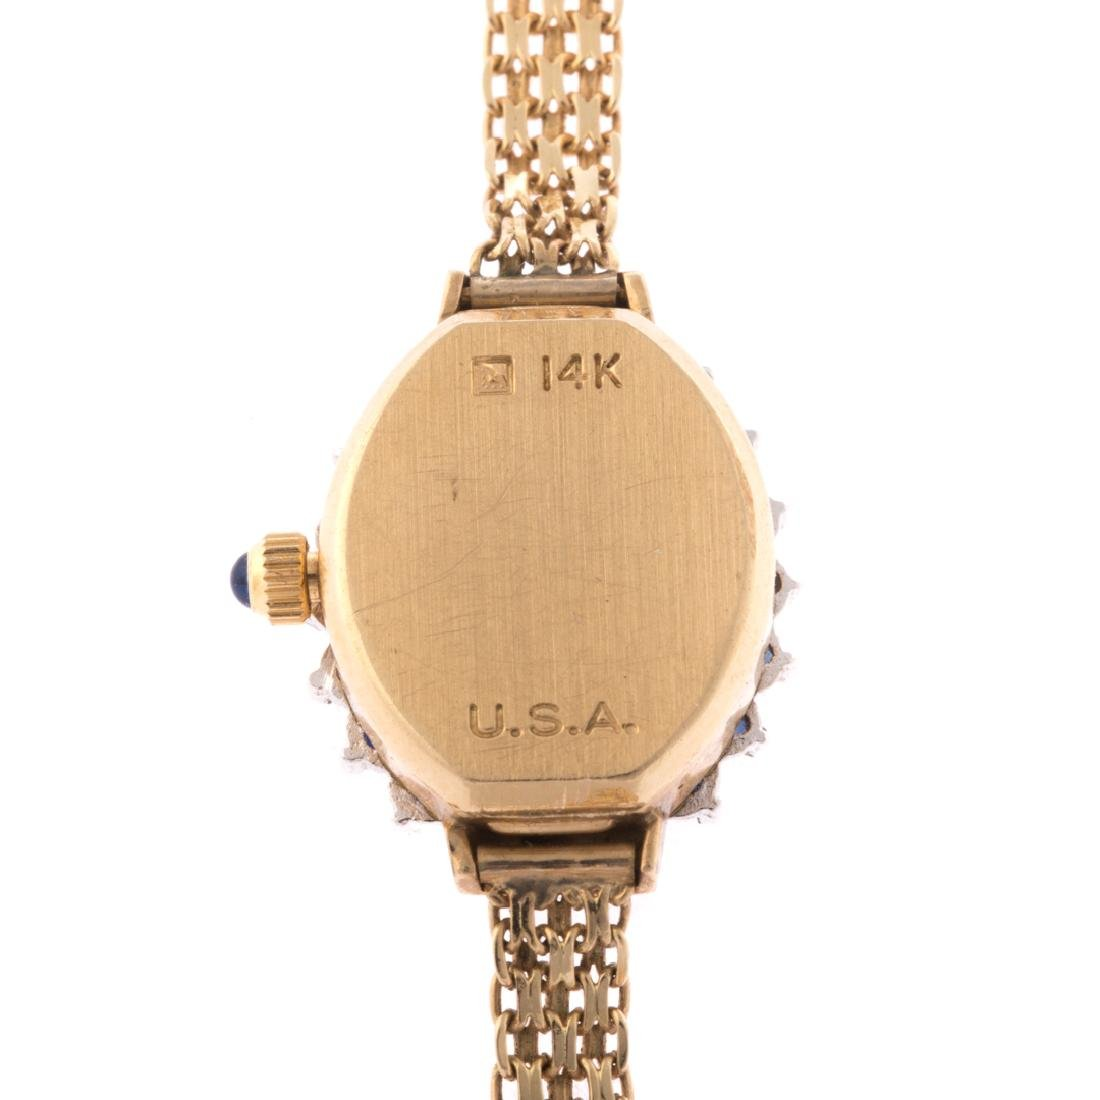 A Lady's 14K Geneve Dress Watch with Sapphires - 3